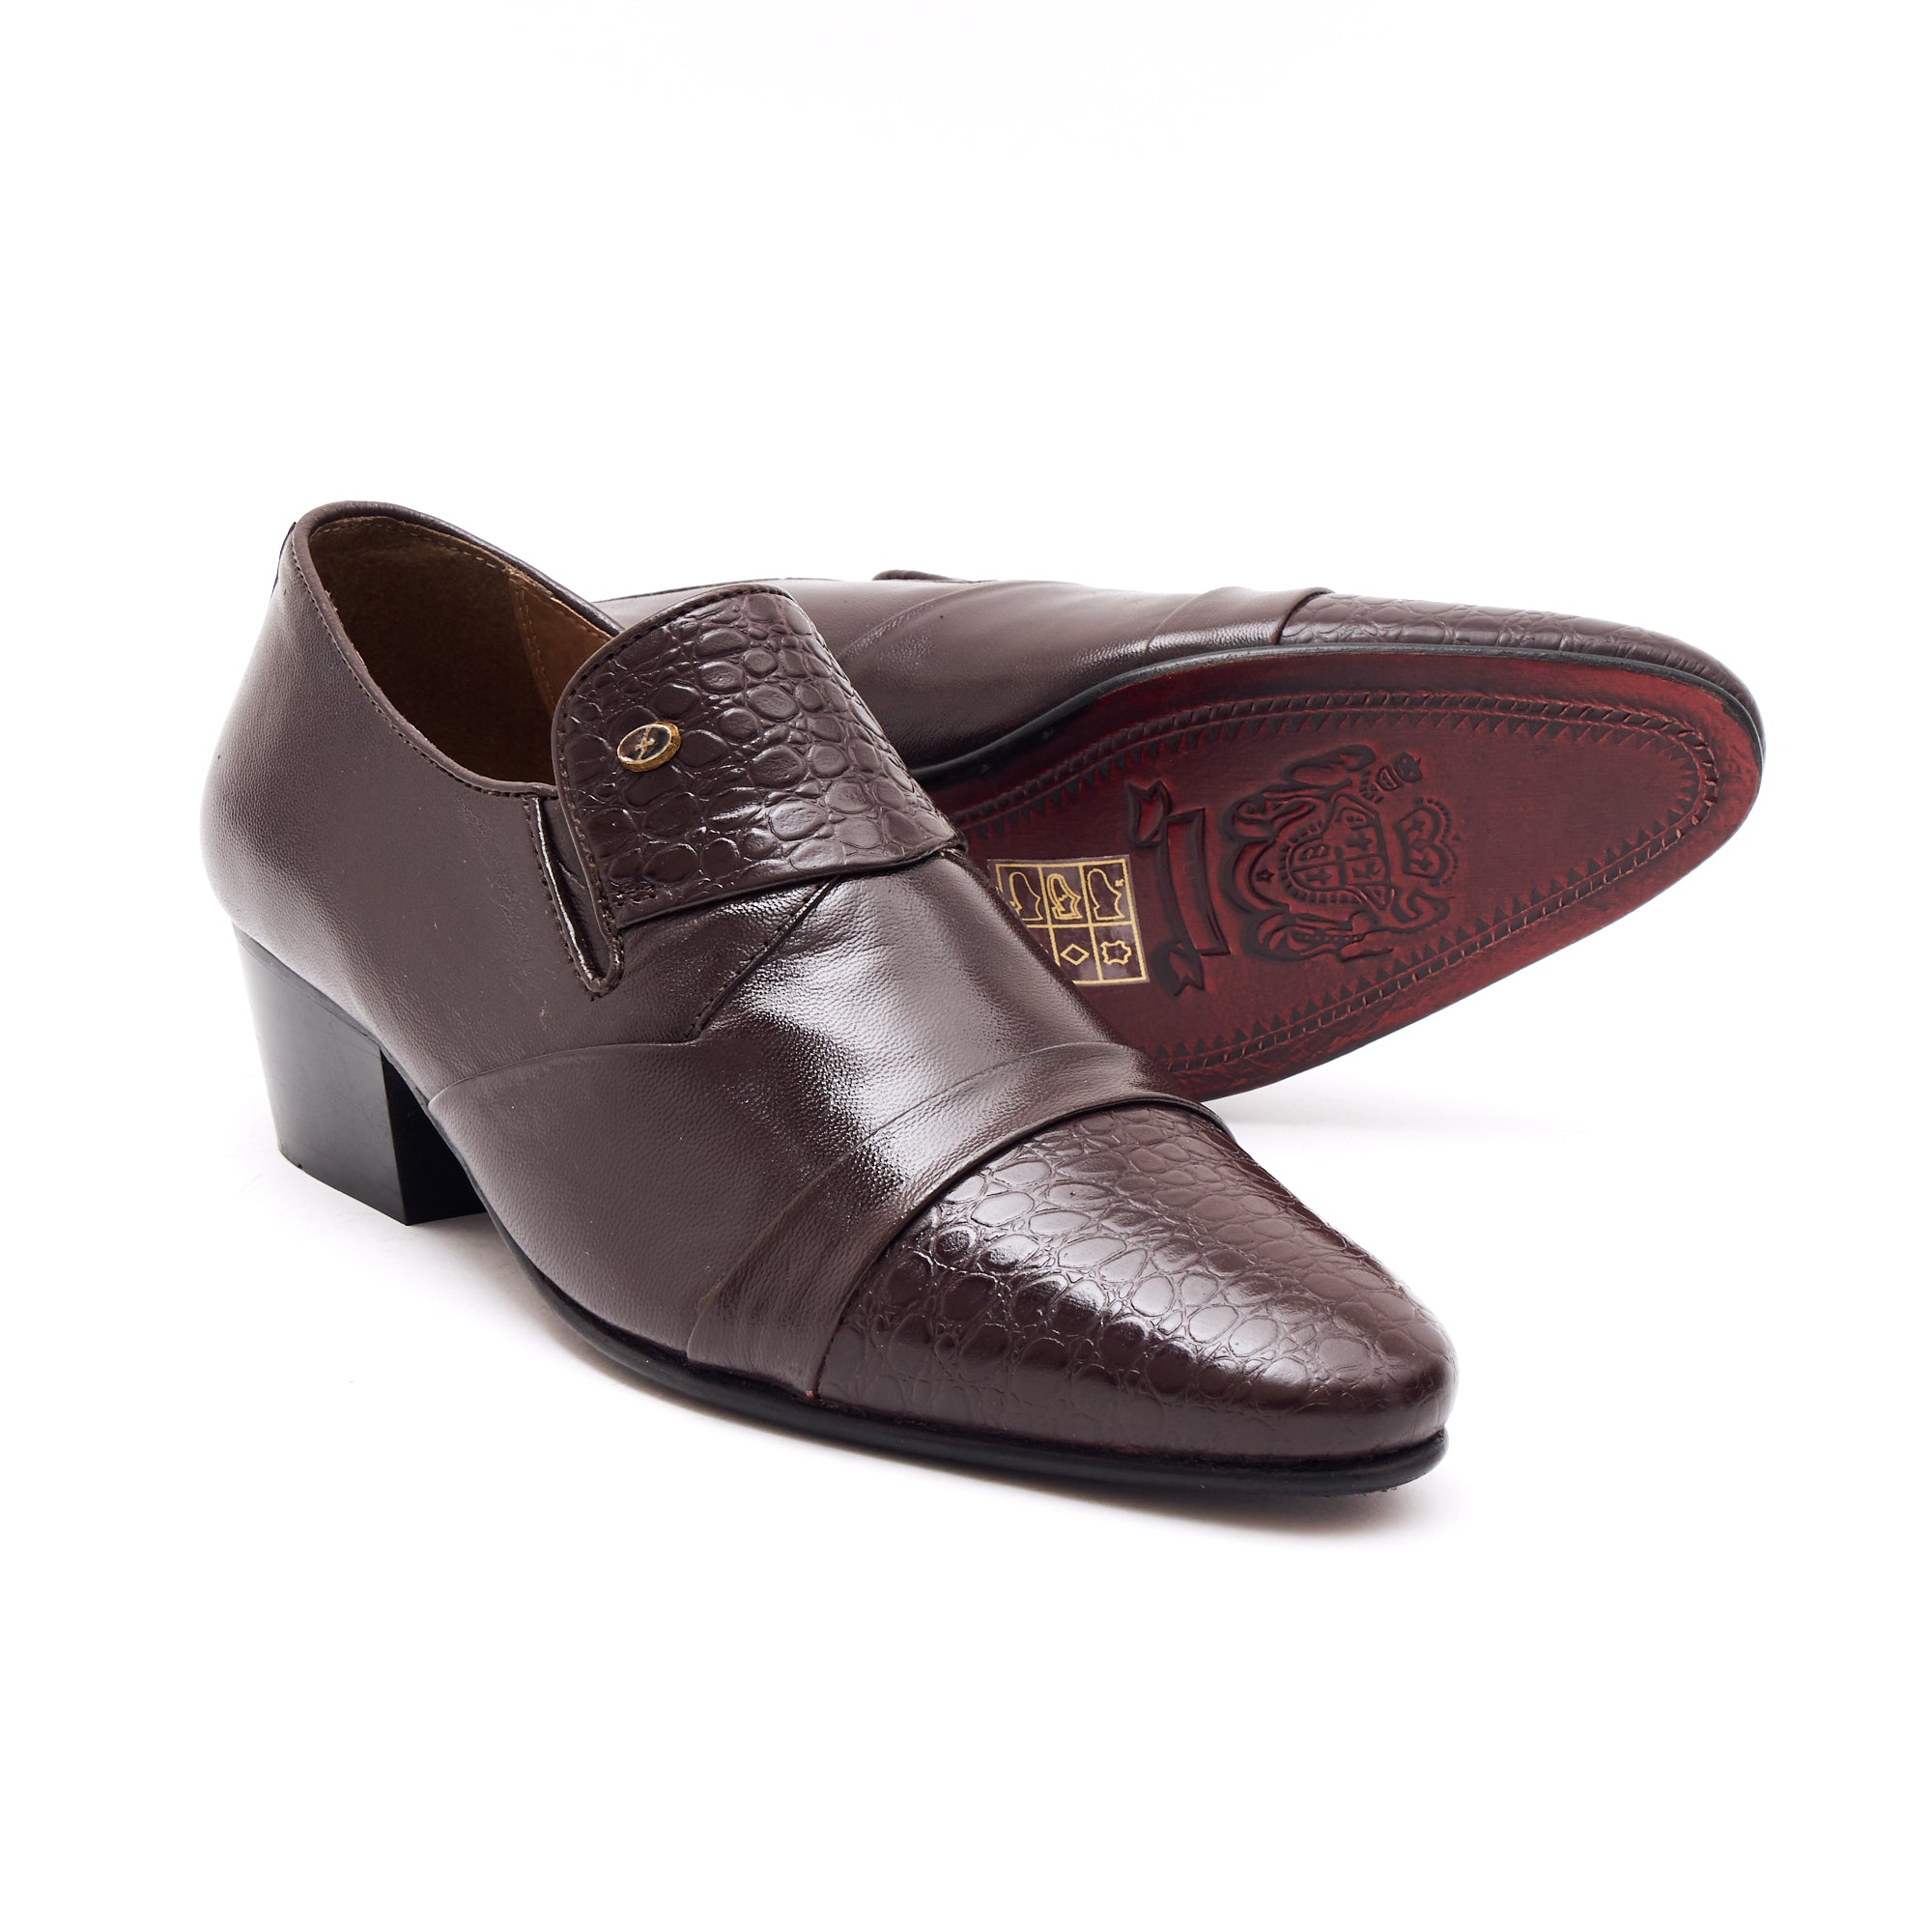 Mens Cuban Heel Leather Shoes- 34005 Brown